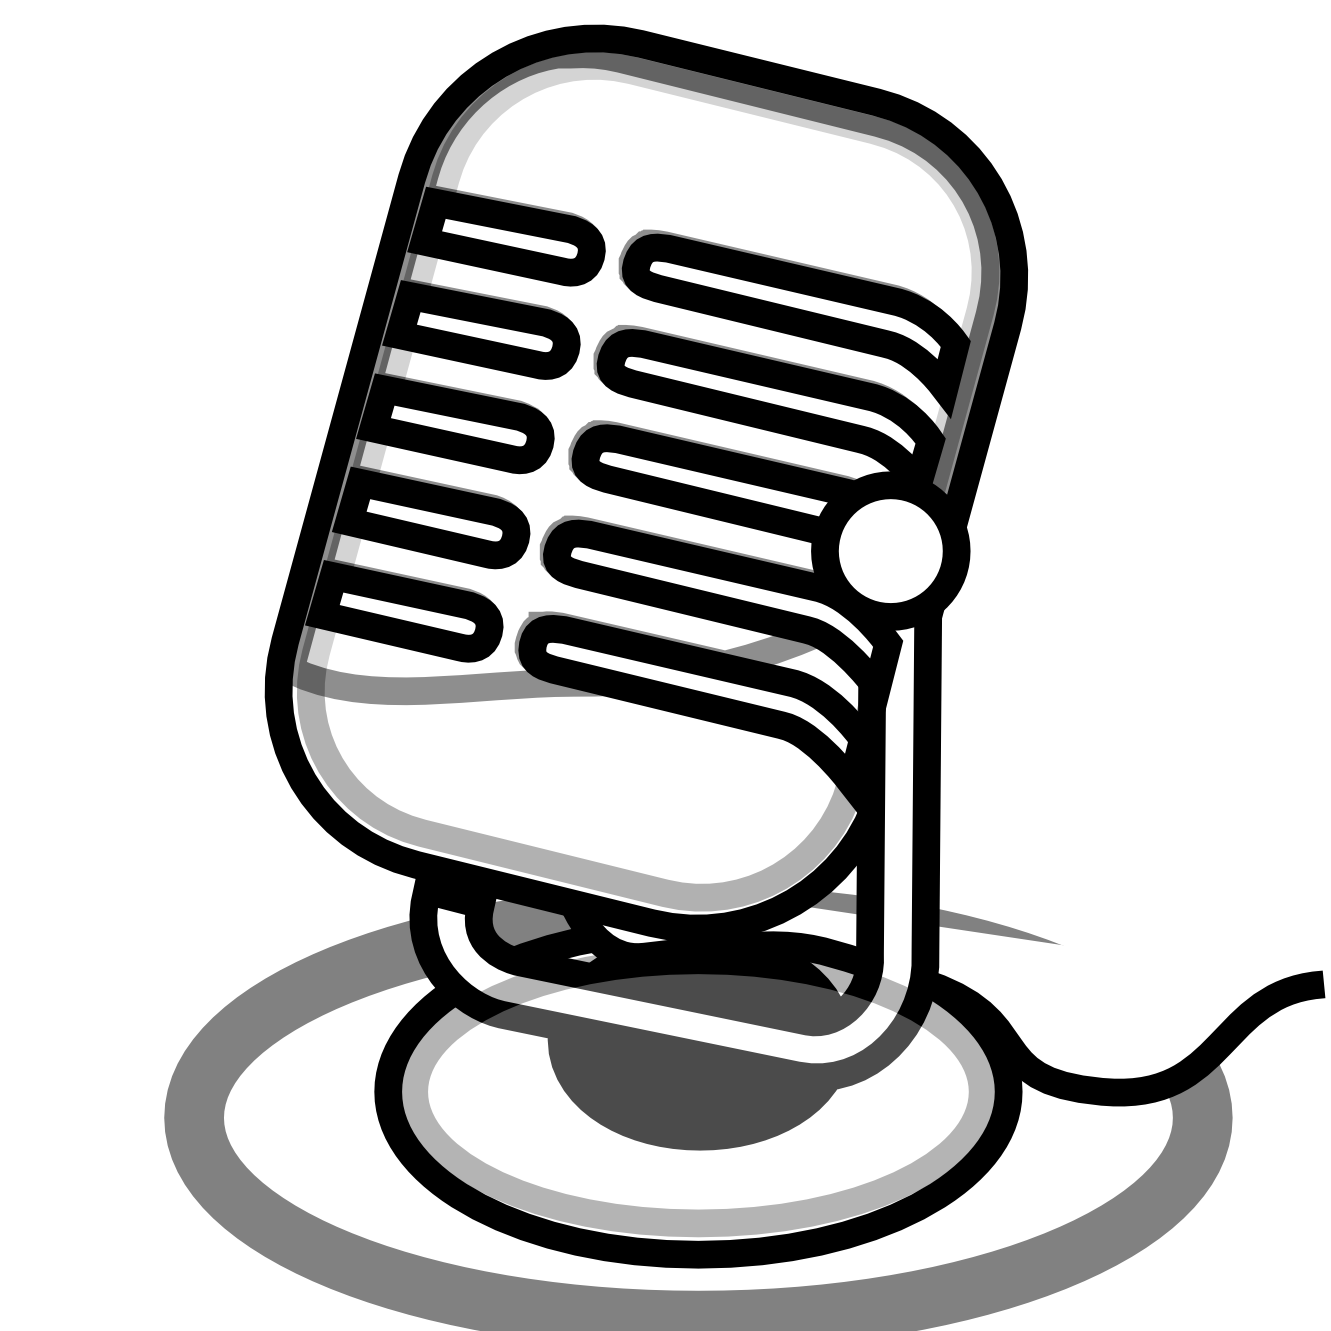 Free Black And White Microphone Clip Art, Download Free Clip.